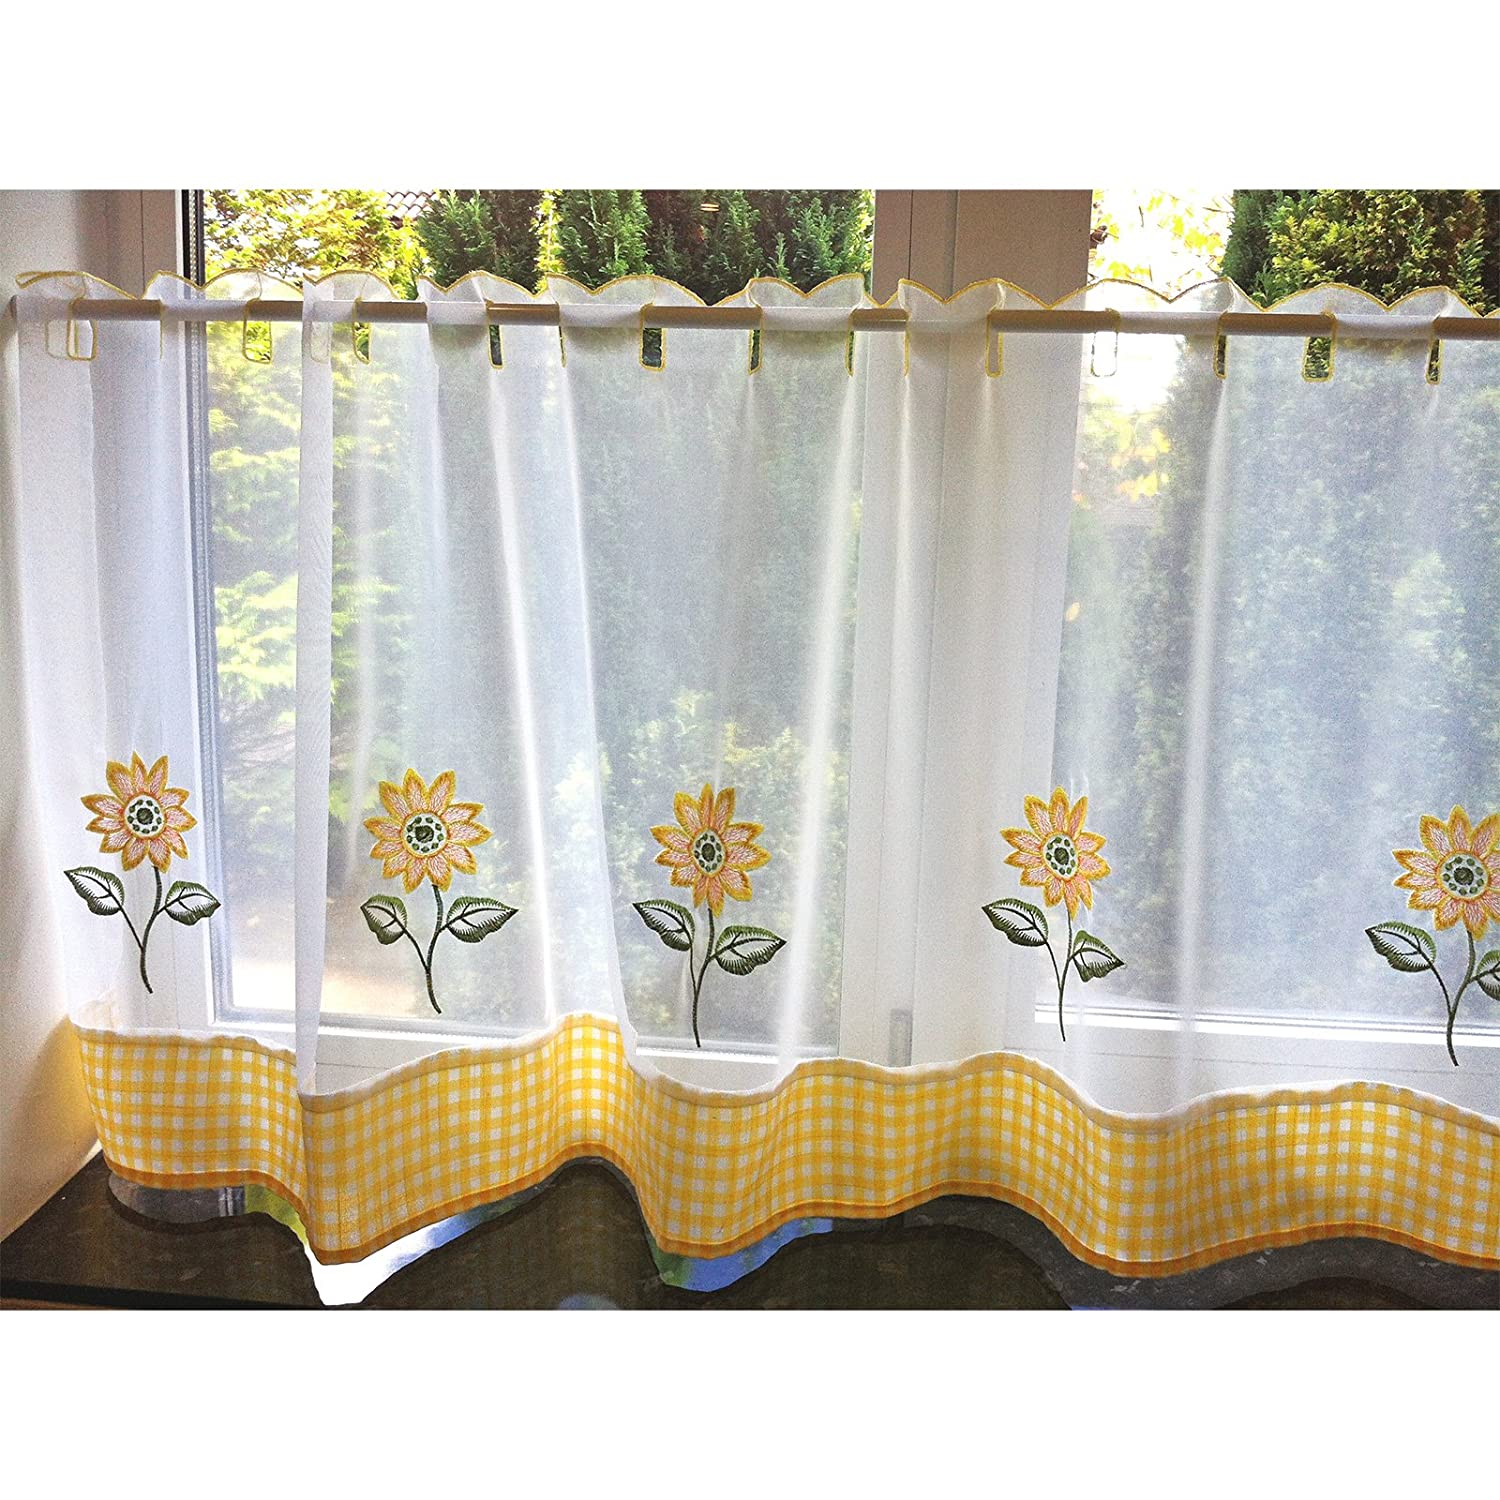 Sunflower Curtains For Kitchen Just Contempo Sunflower Flower Cafe Net Voile Panel 60 X 18